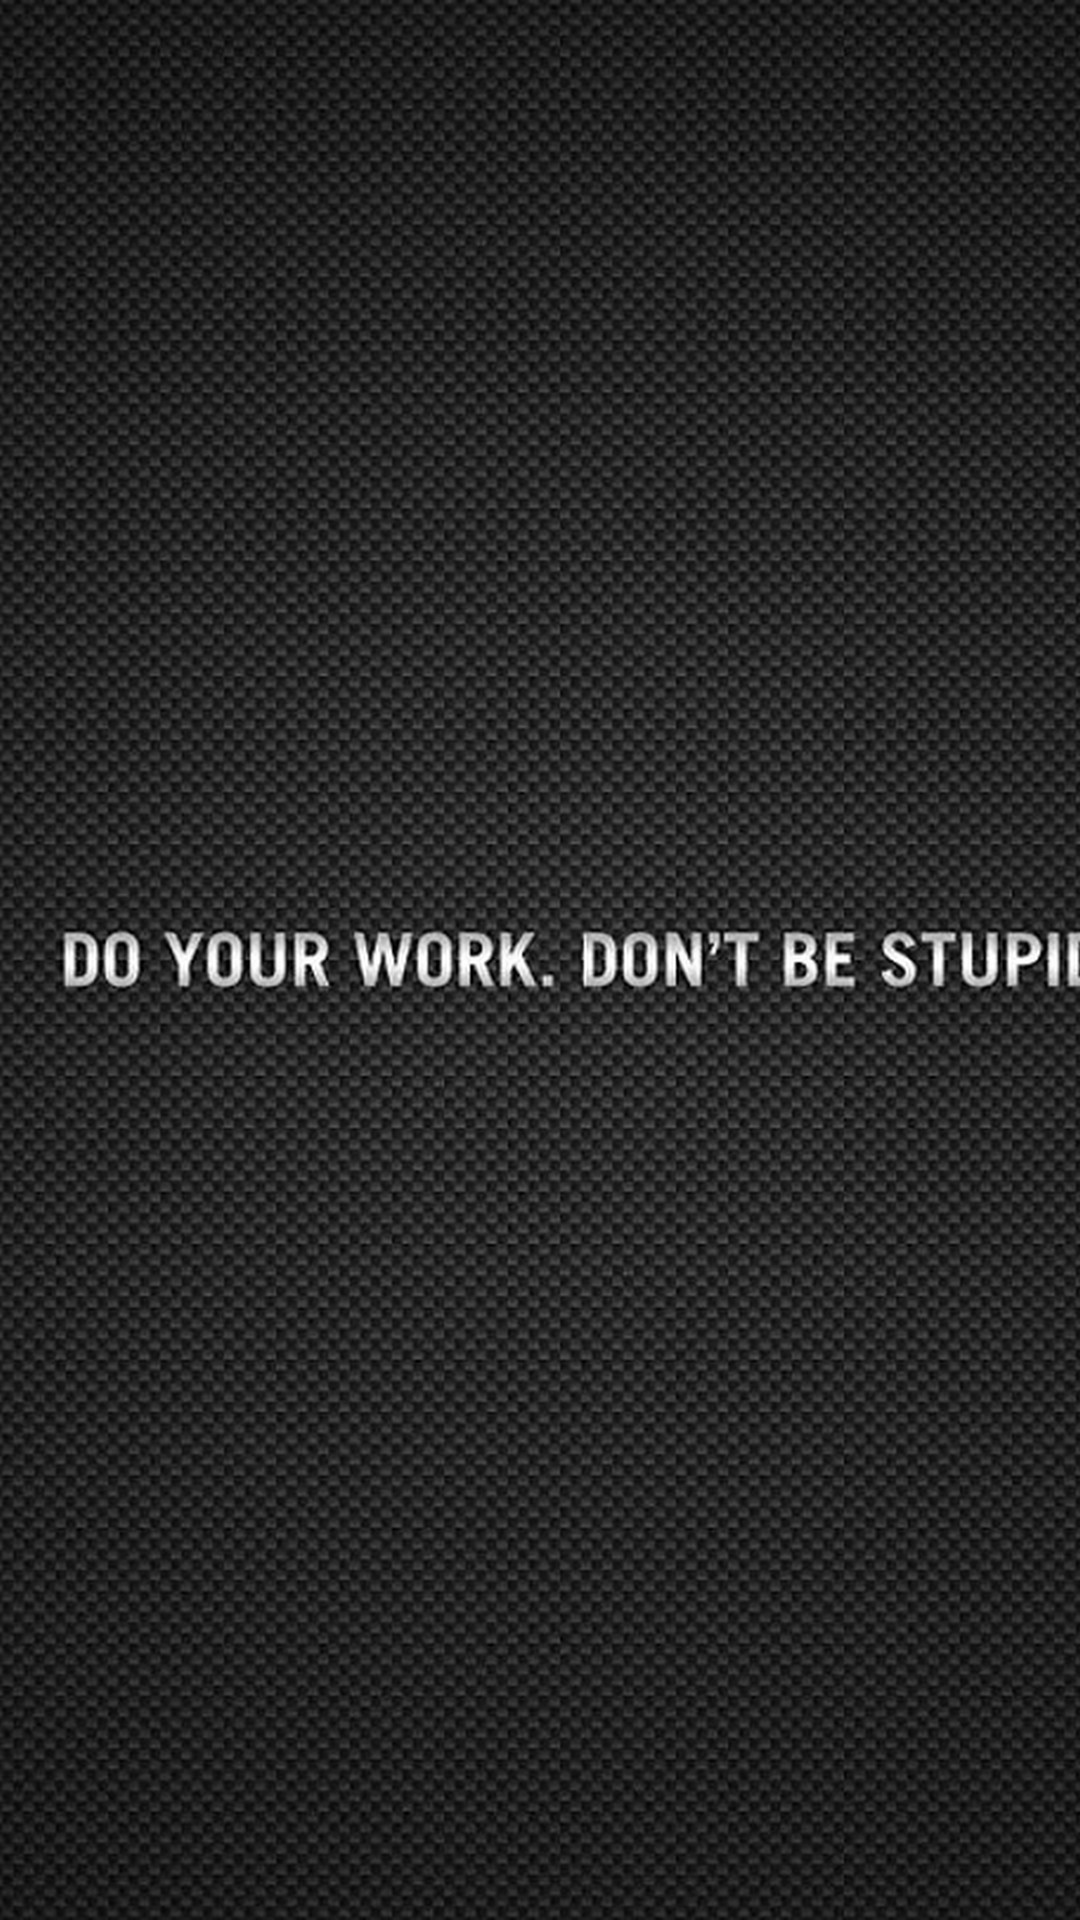 Stupid Wallpaper 72 Images